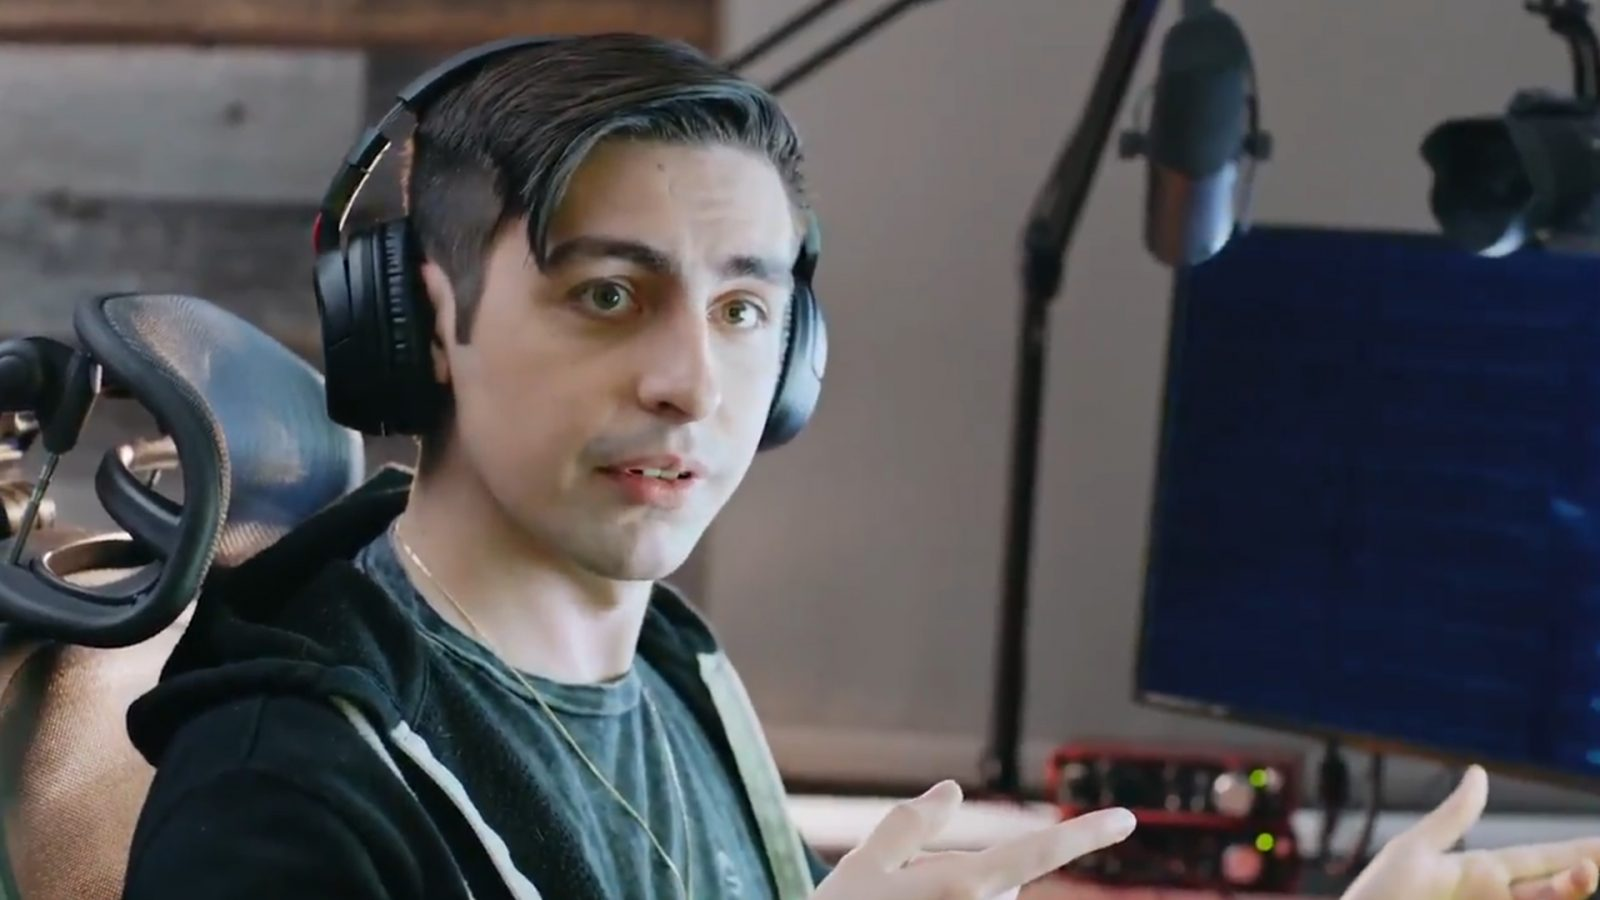 15% of Shroud's viewers followed him from Twitch to Mixer